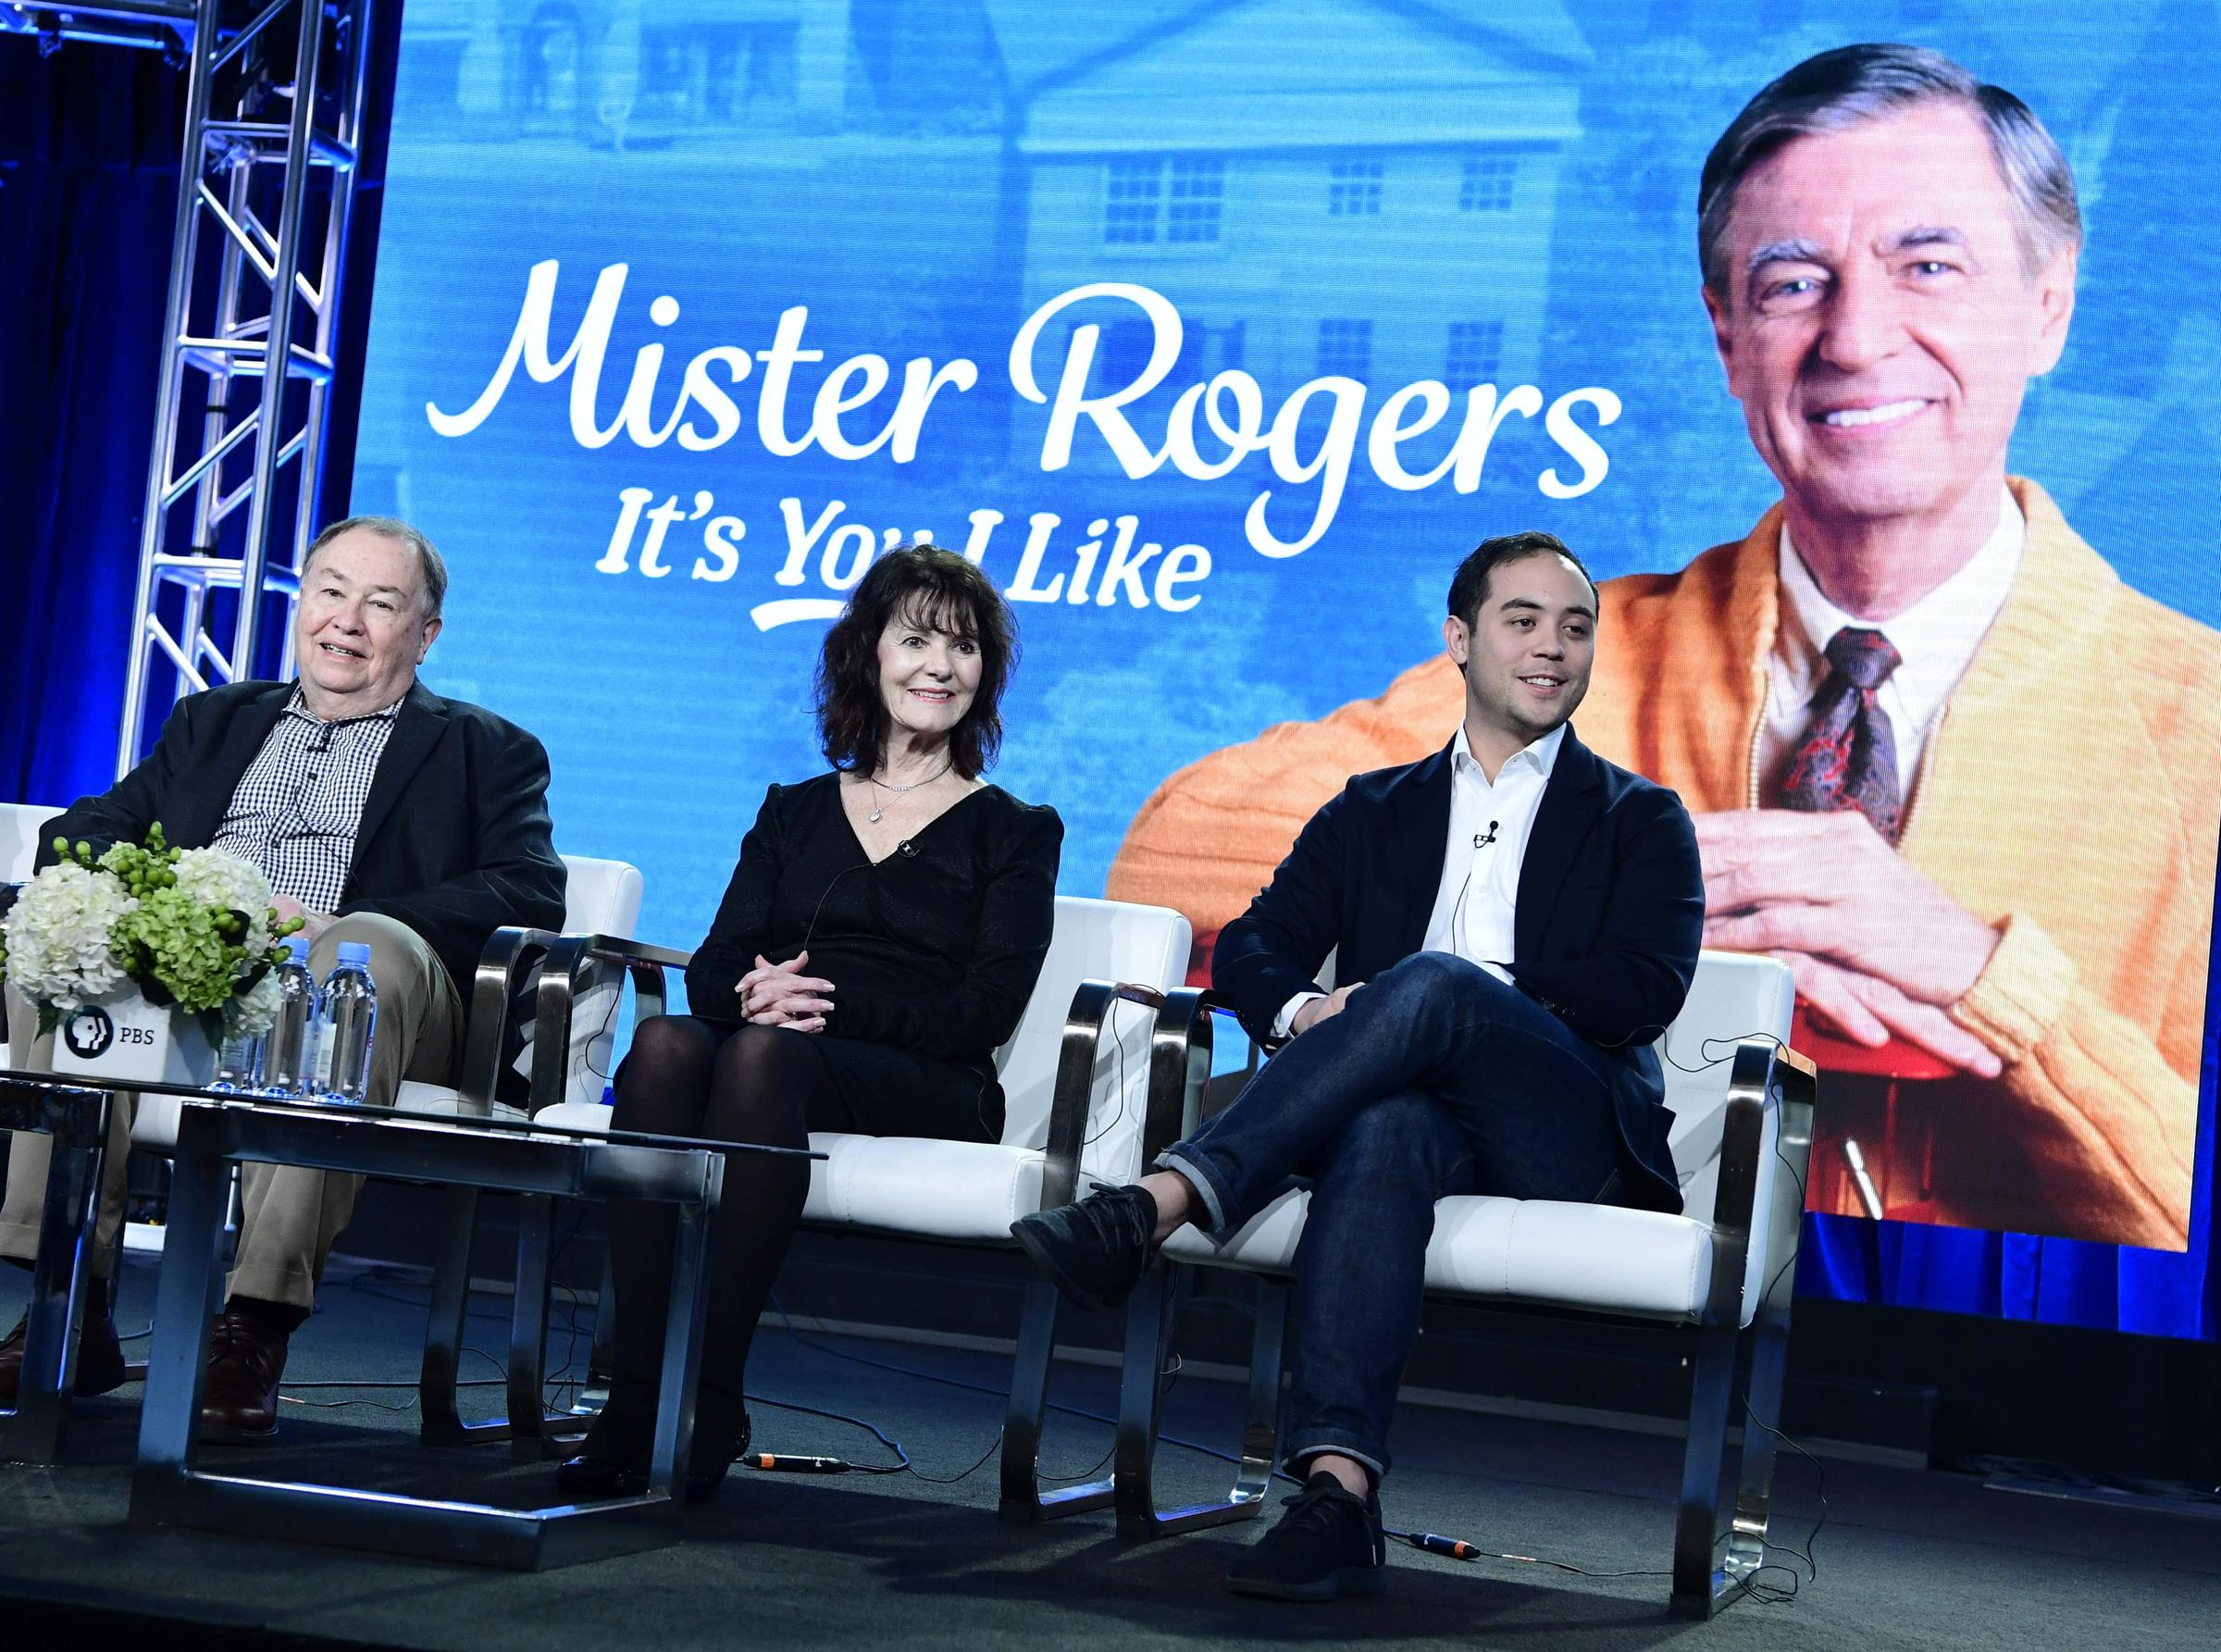 Mister Rogers will be on the next Forever stamp